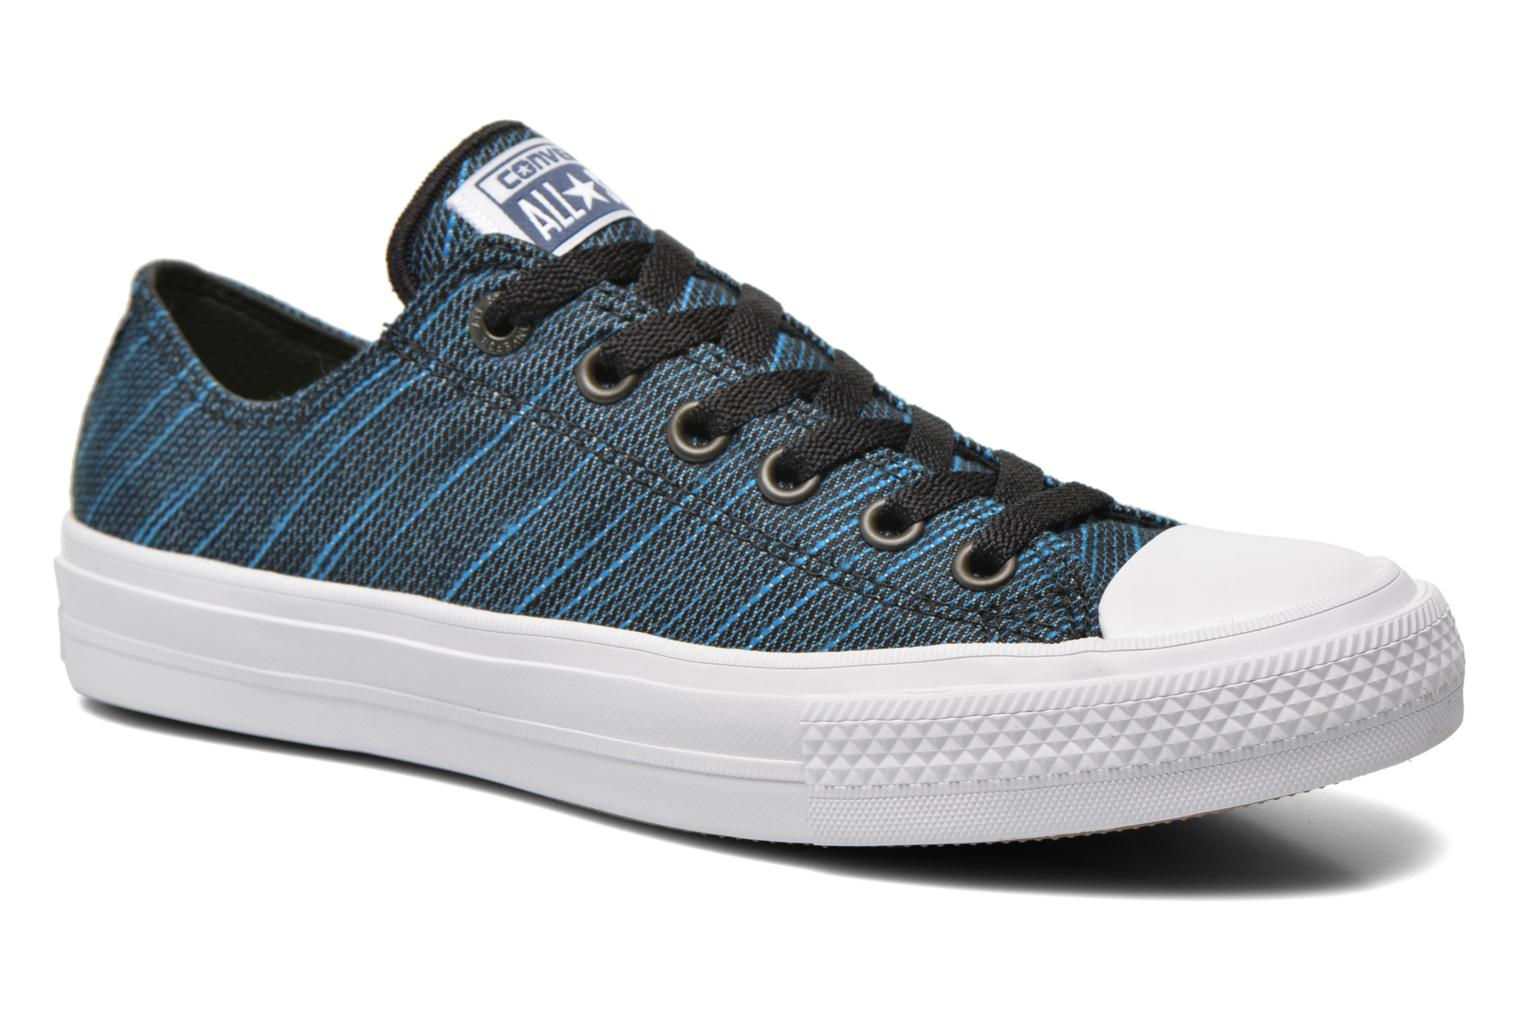 Chuck Taylor All Star II Ox M Black-Spray Paint Blue-White